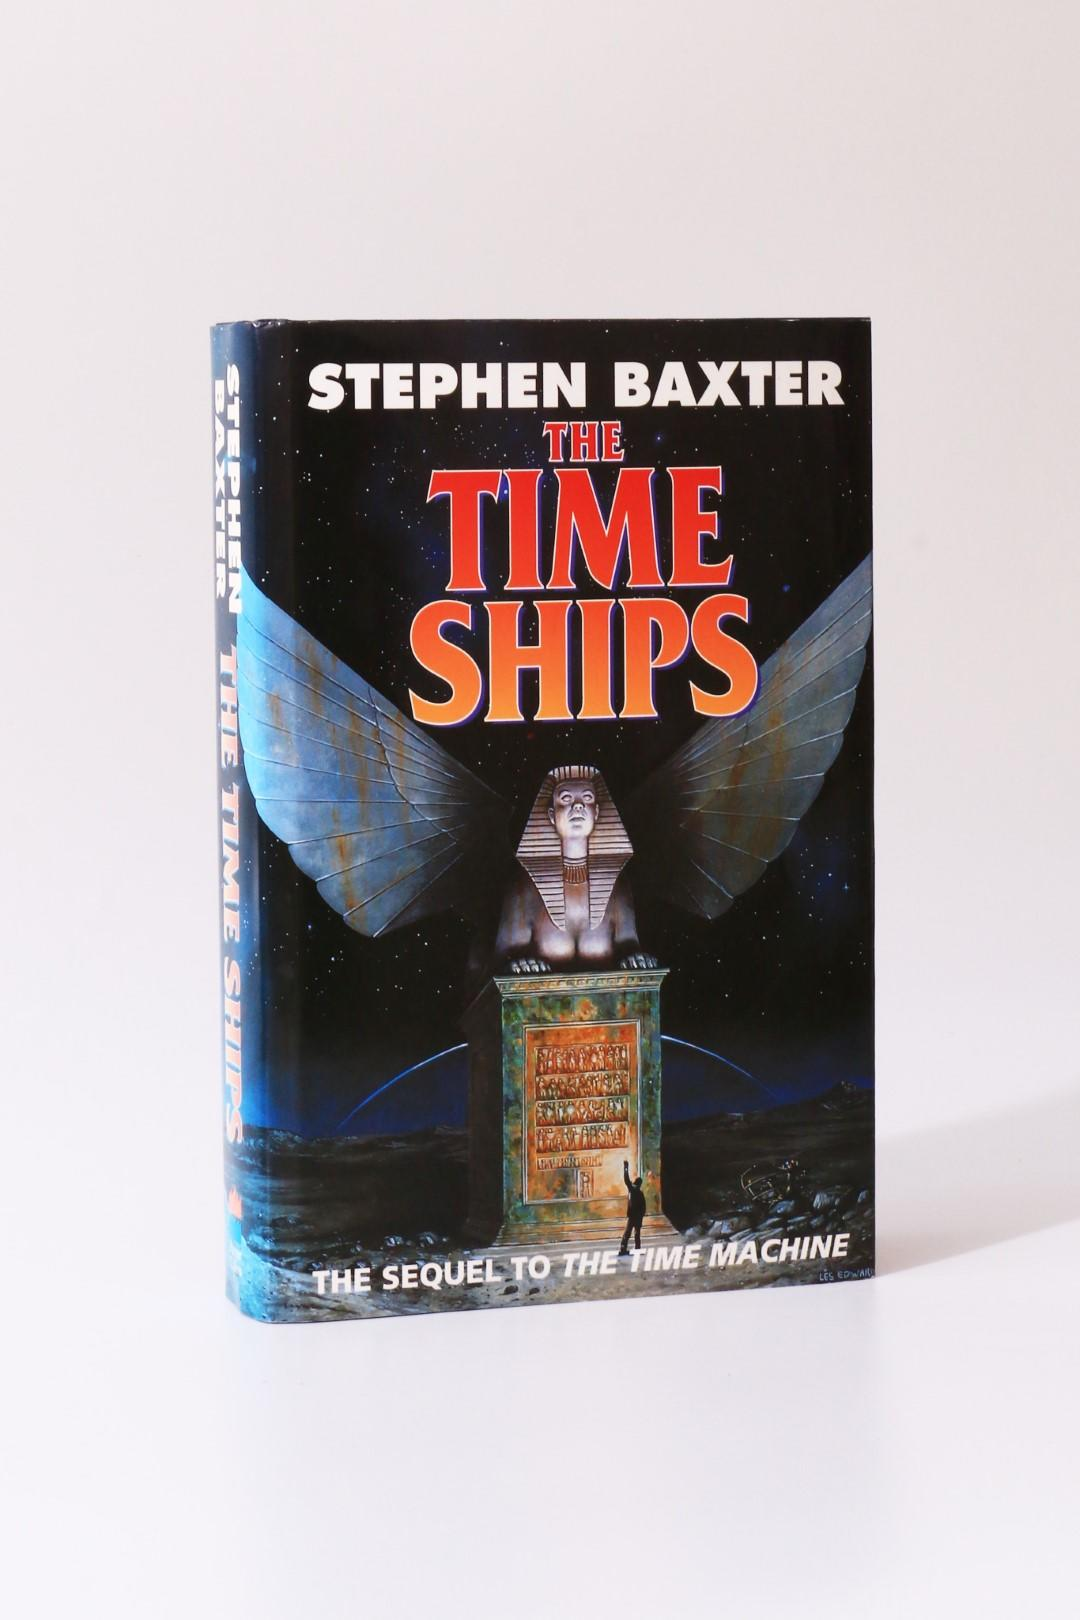 Stephen Baxter - The Time Ships - Harper Collins, 1995, Signed First Edition.